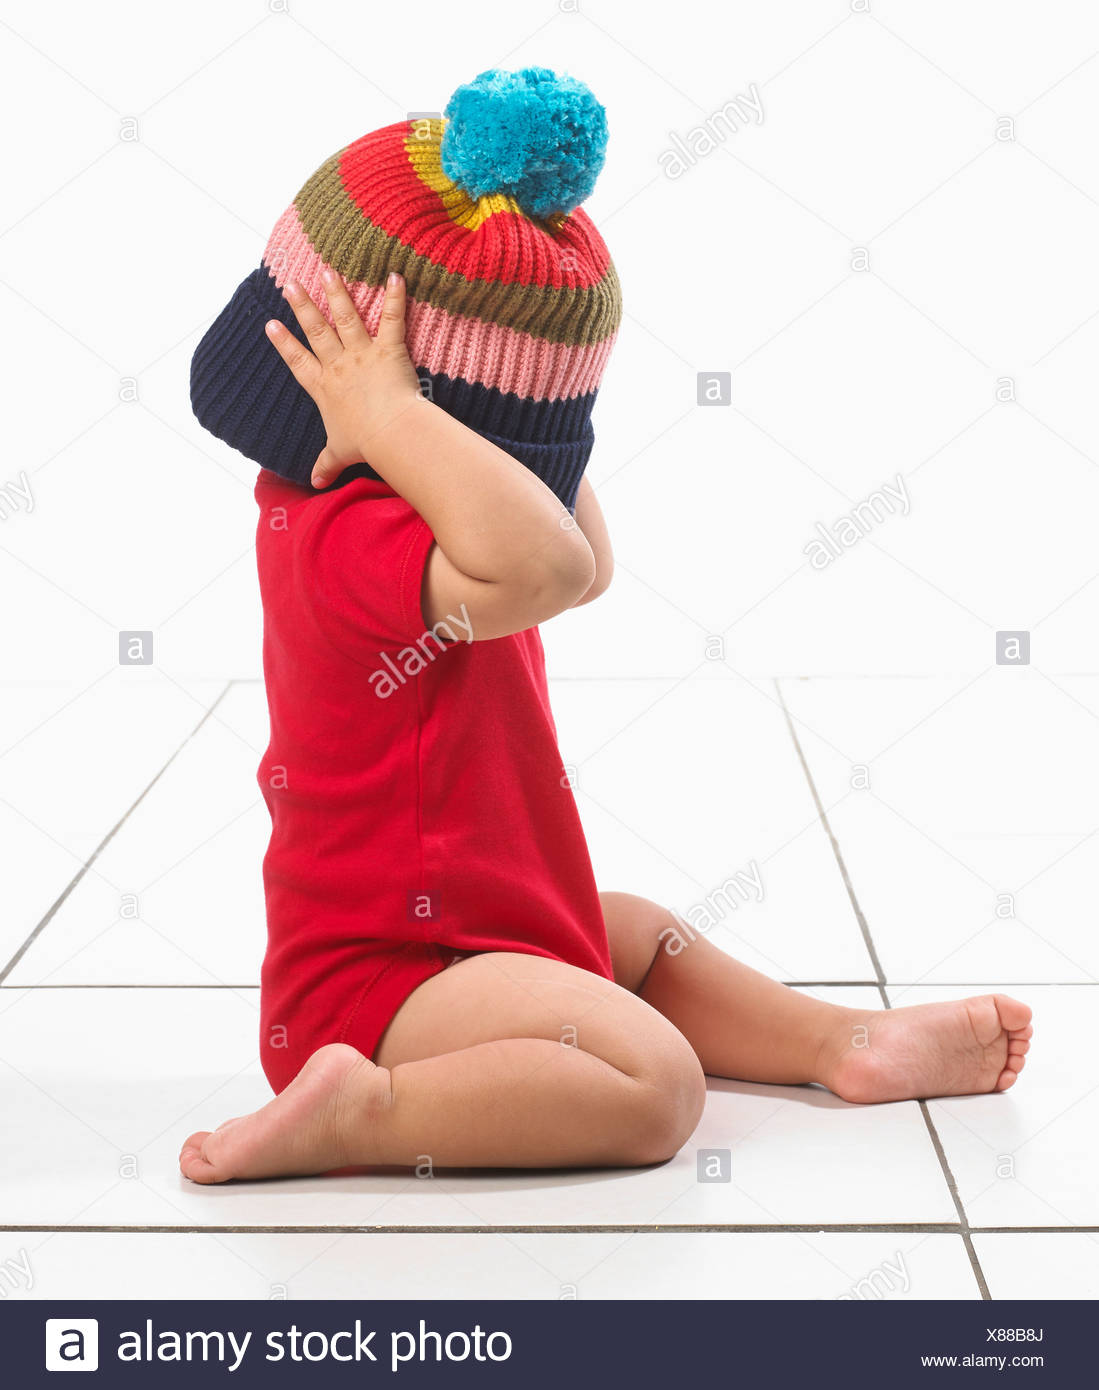 51e3b8fcc Baby boy (16 months) with colourful stripes woolly hat over head and ...